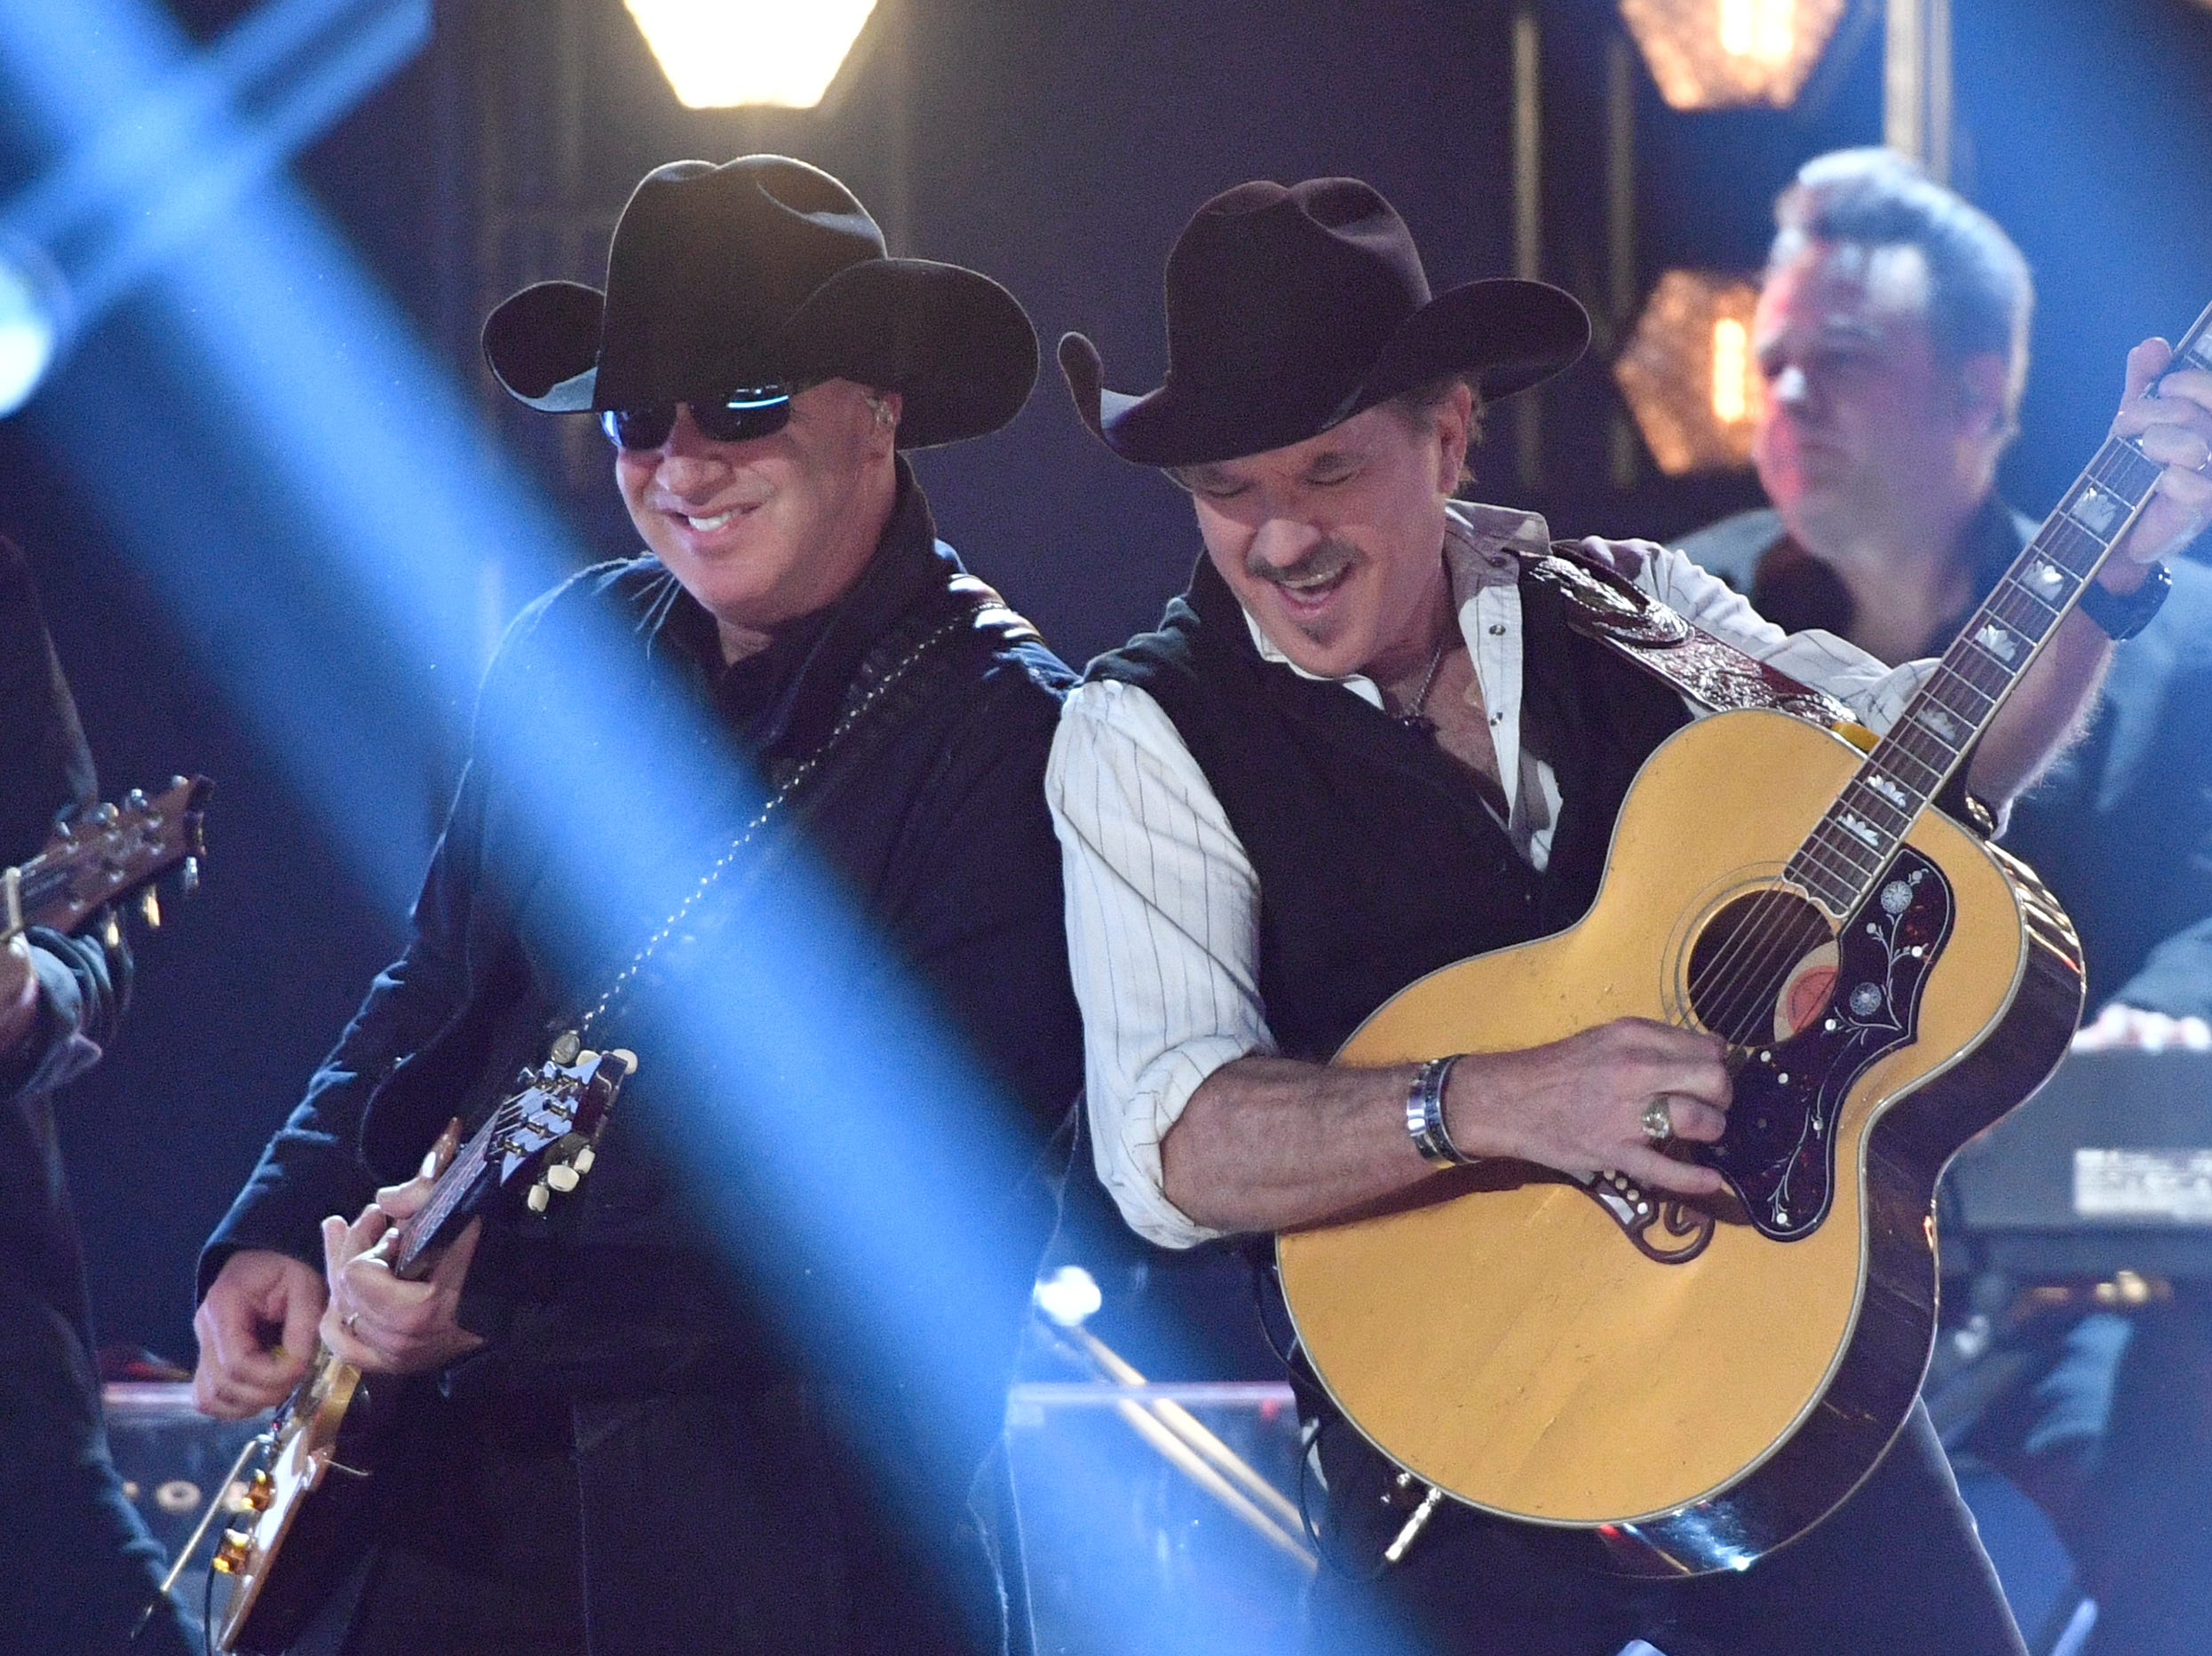 Kix Brooks, right, of Brooks & Dunn, performs during the 54TH Academy of Country Music Awards Sunday, April 7, 2019, in Las Vegas, Nev.